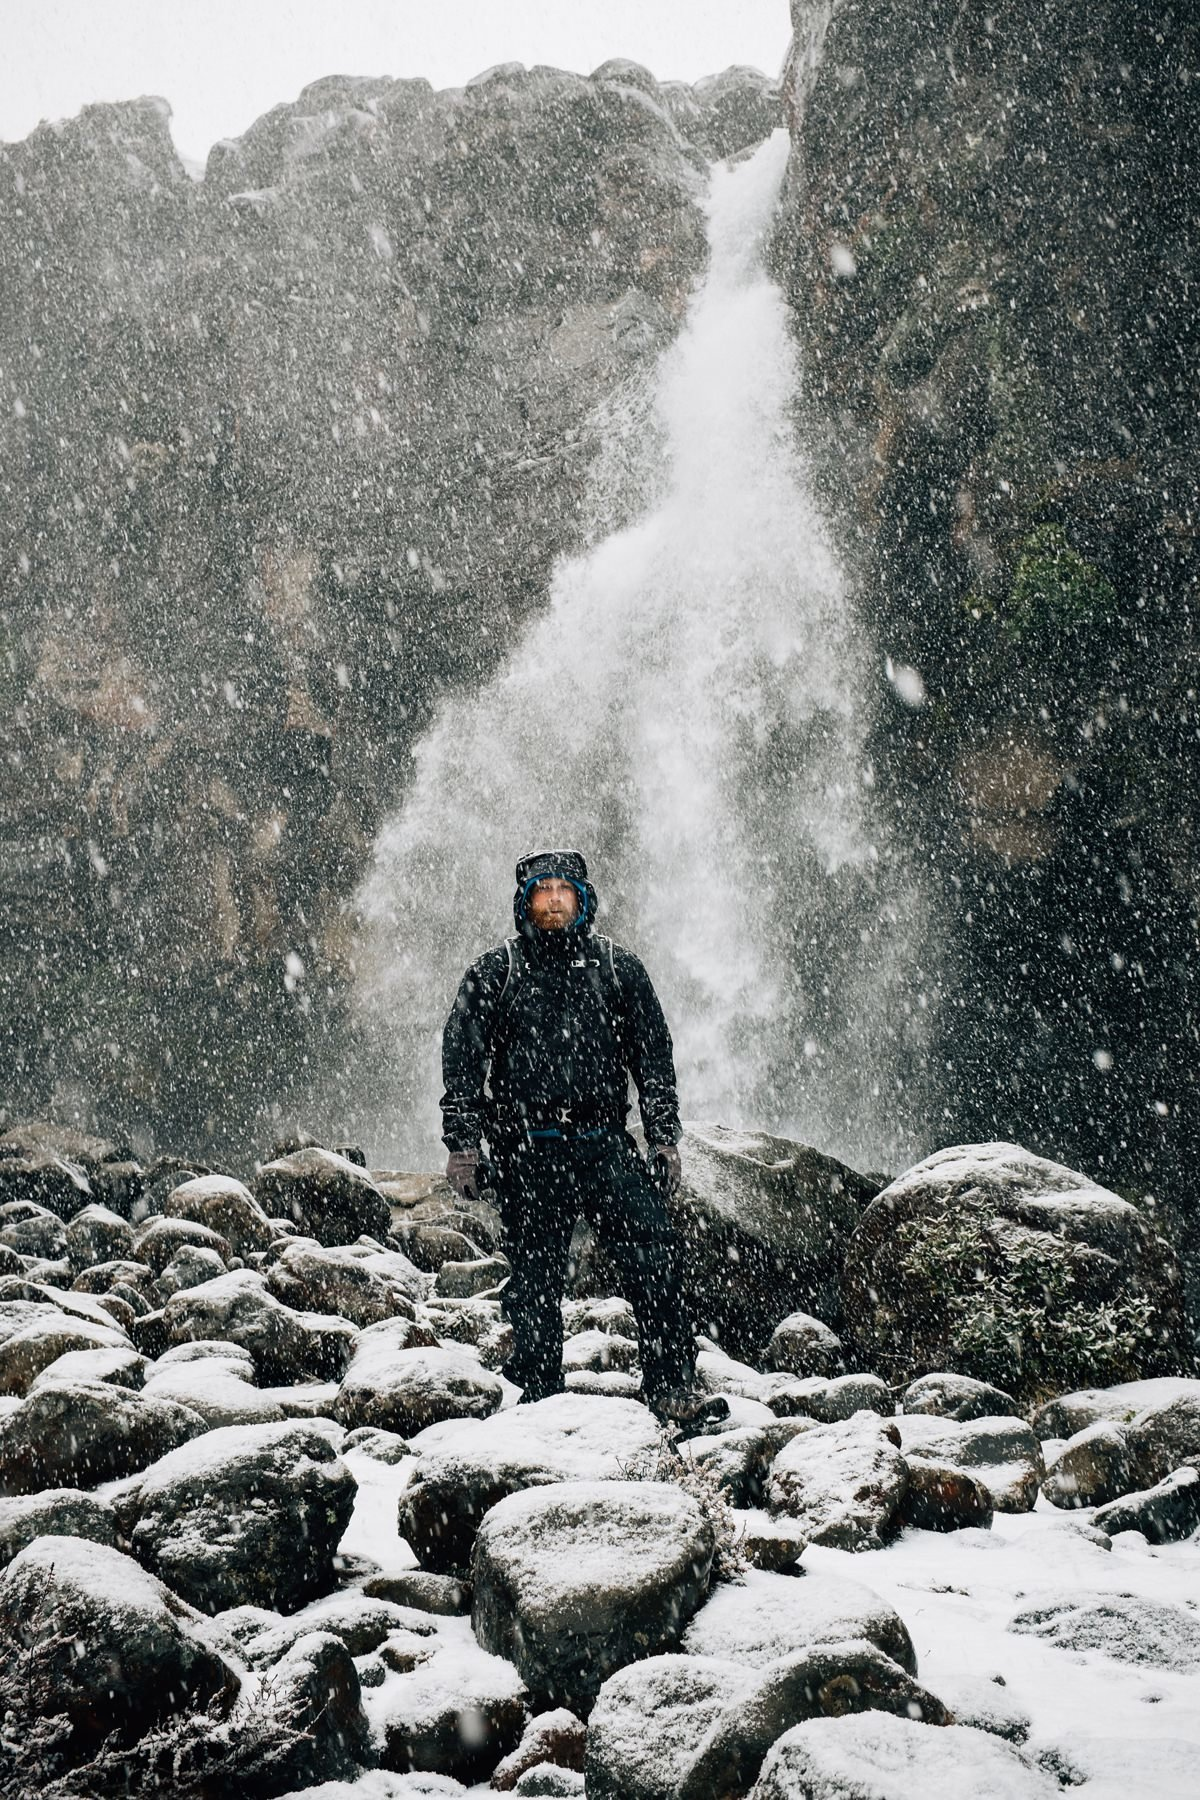 cameron-zegers-travel-photographer-new-zealand-waterfall-snow